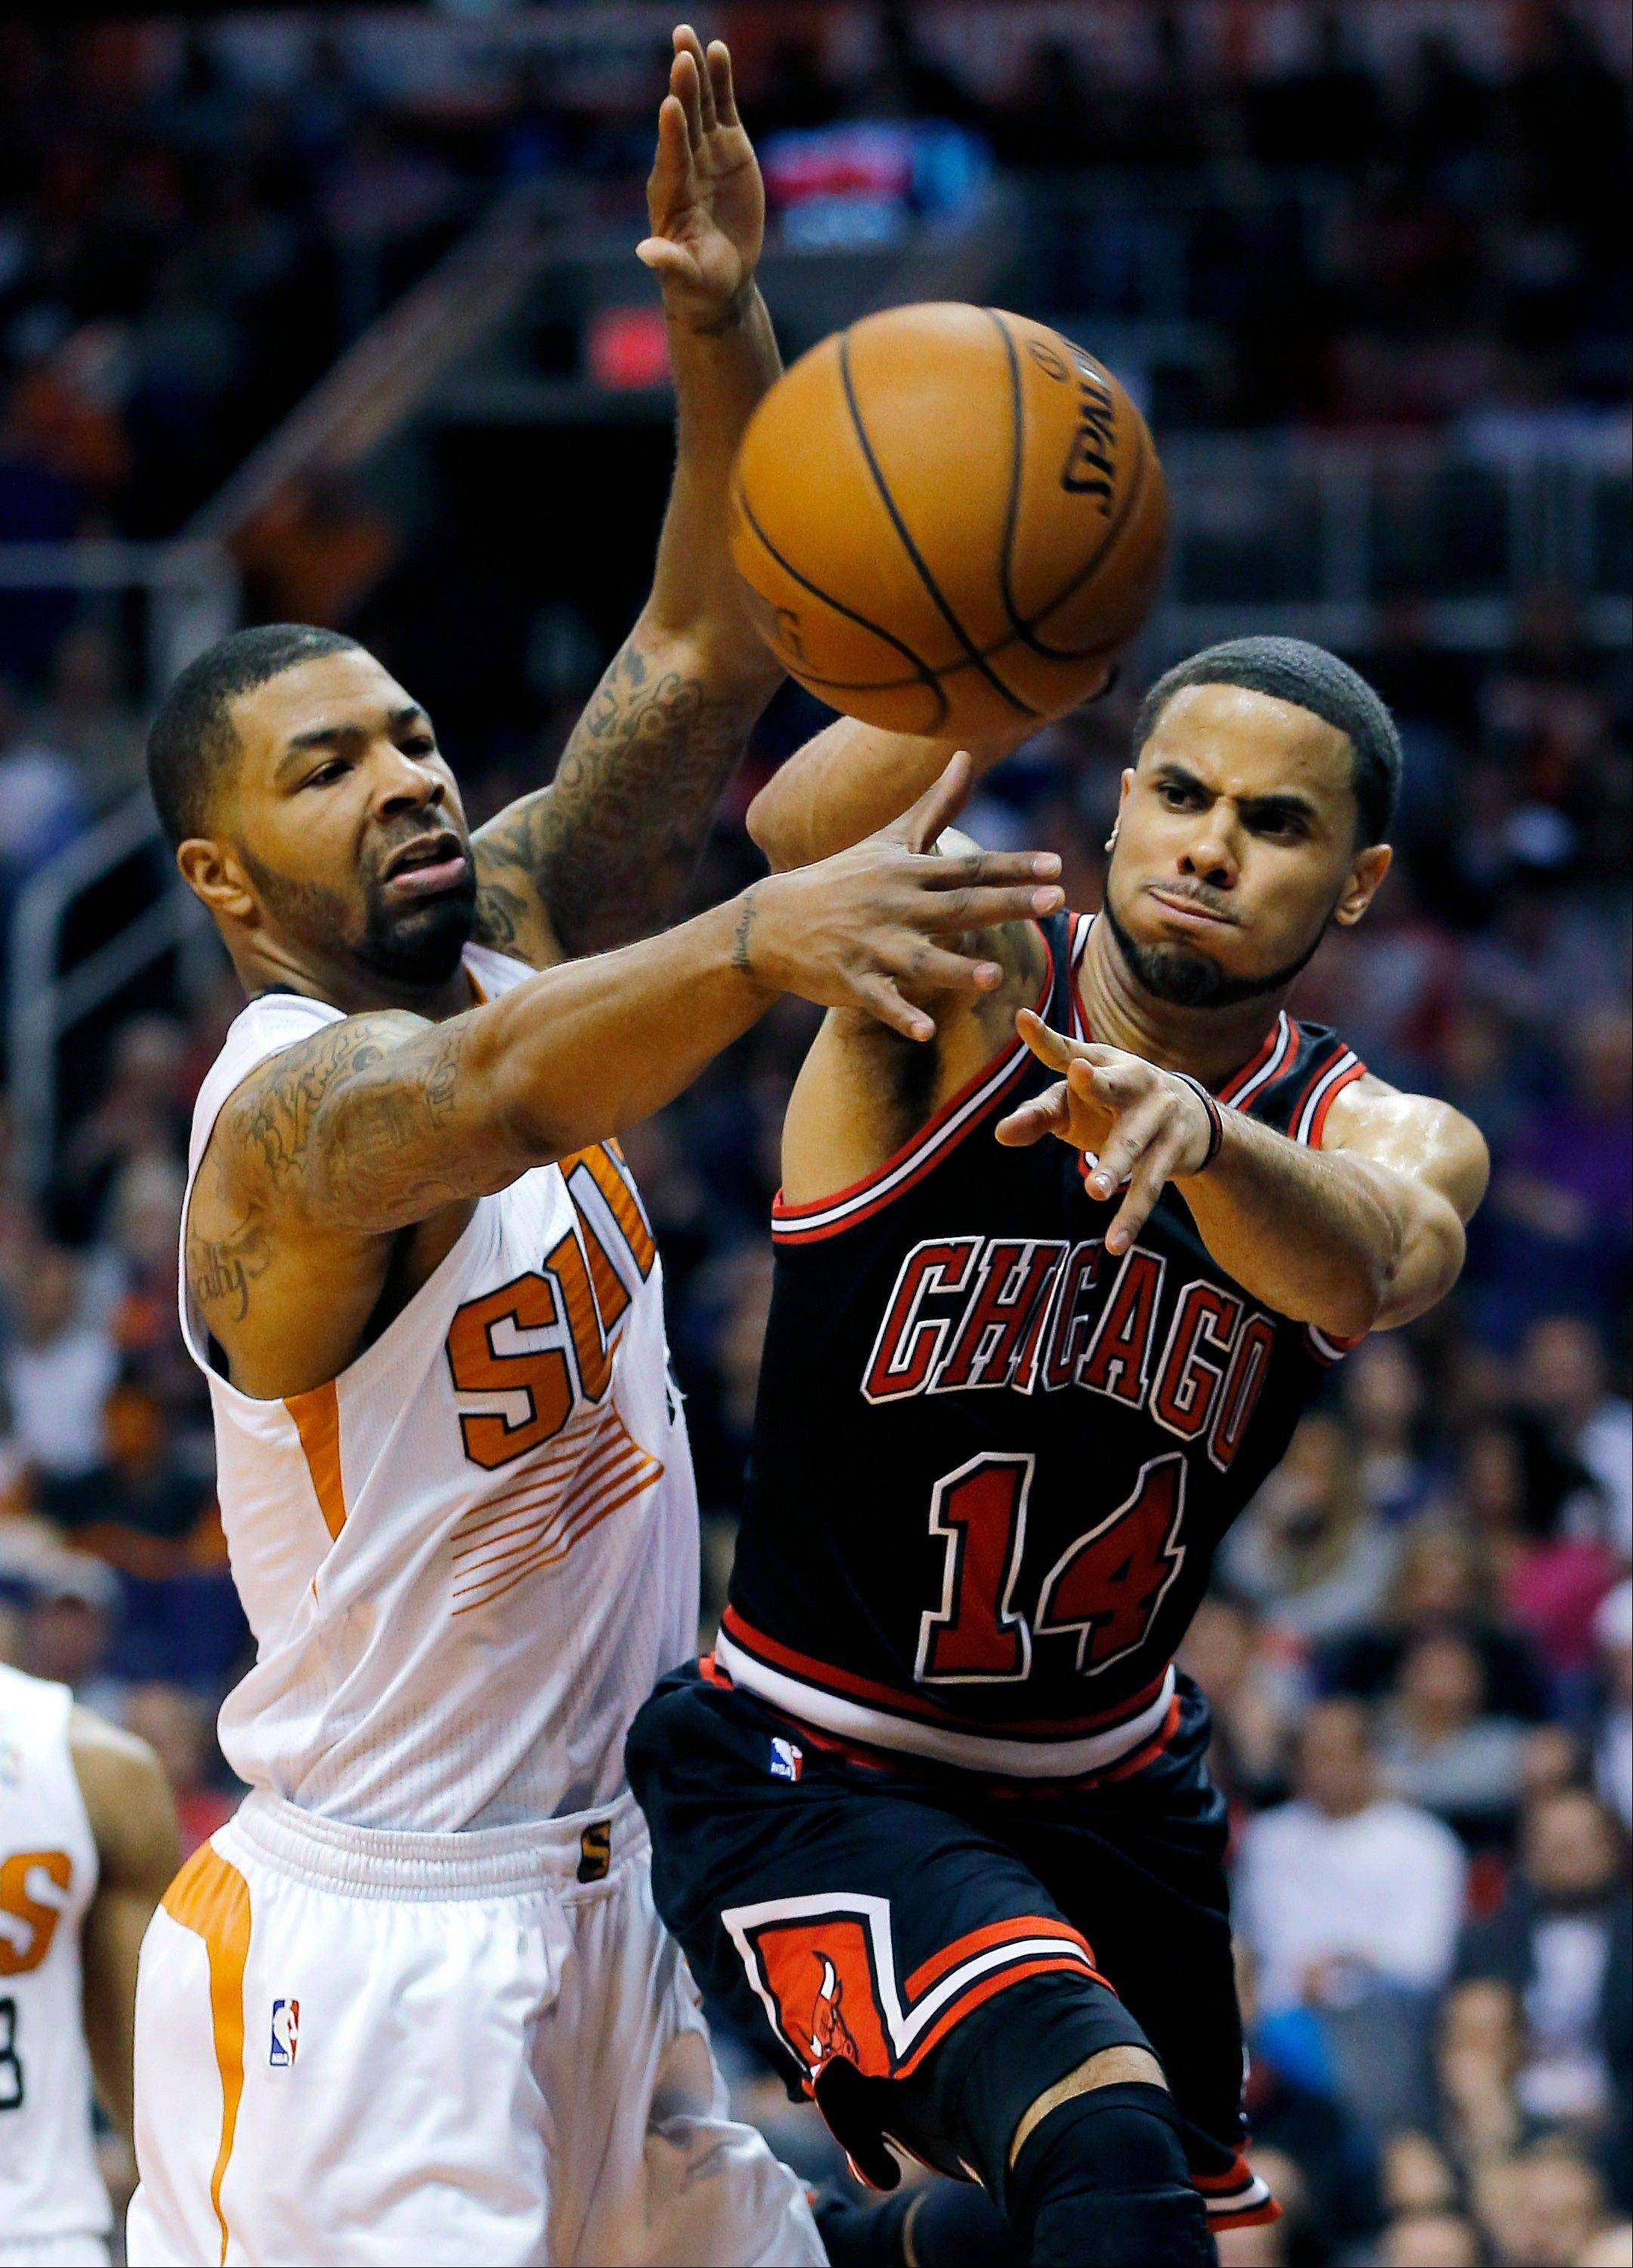 Bulls guard D.J. Augustin passes around the Suns' Markieff Morris during the first half Tuesday night. Augustin finished with 18 points in the Bulls' victory.